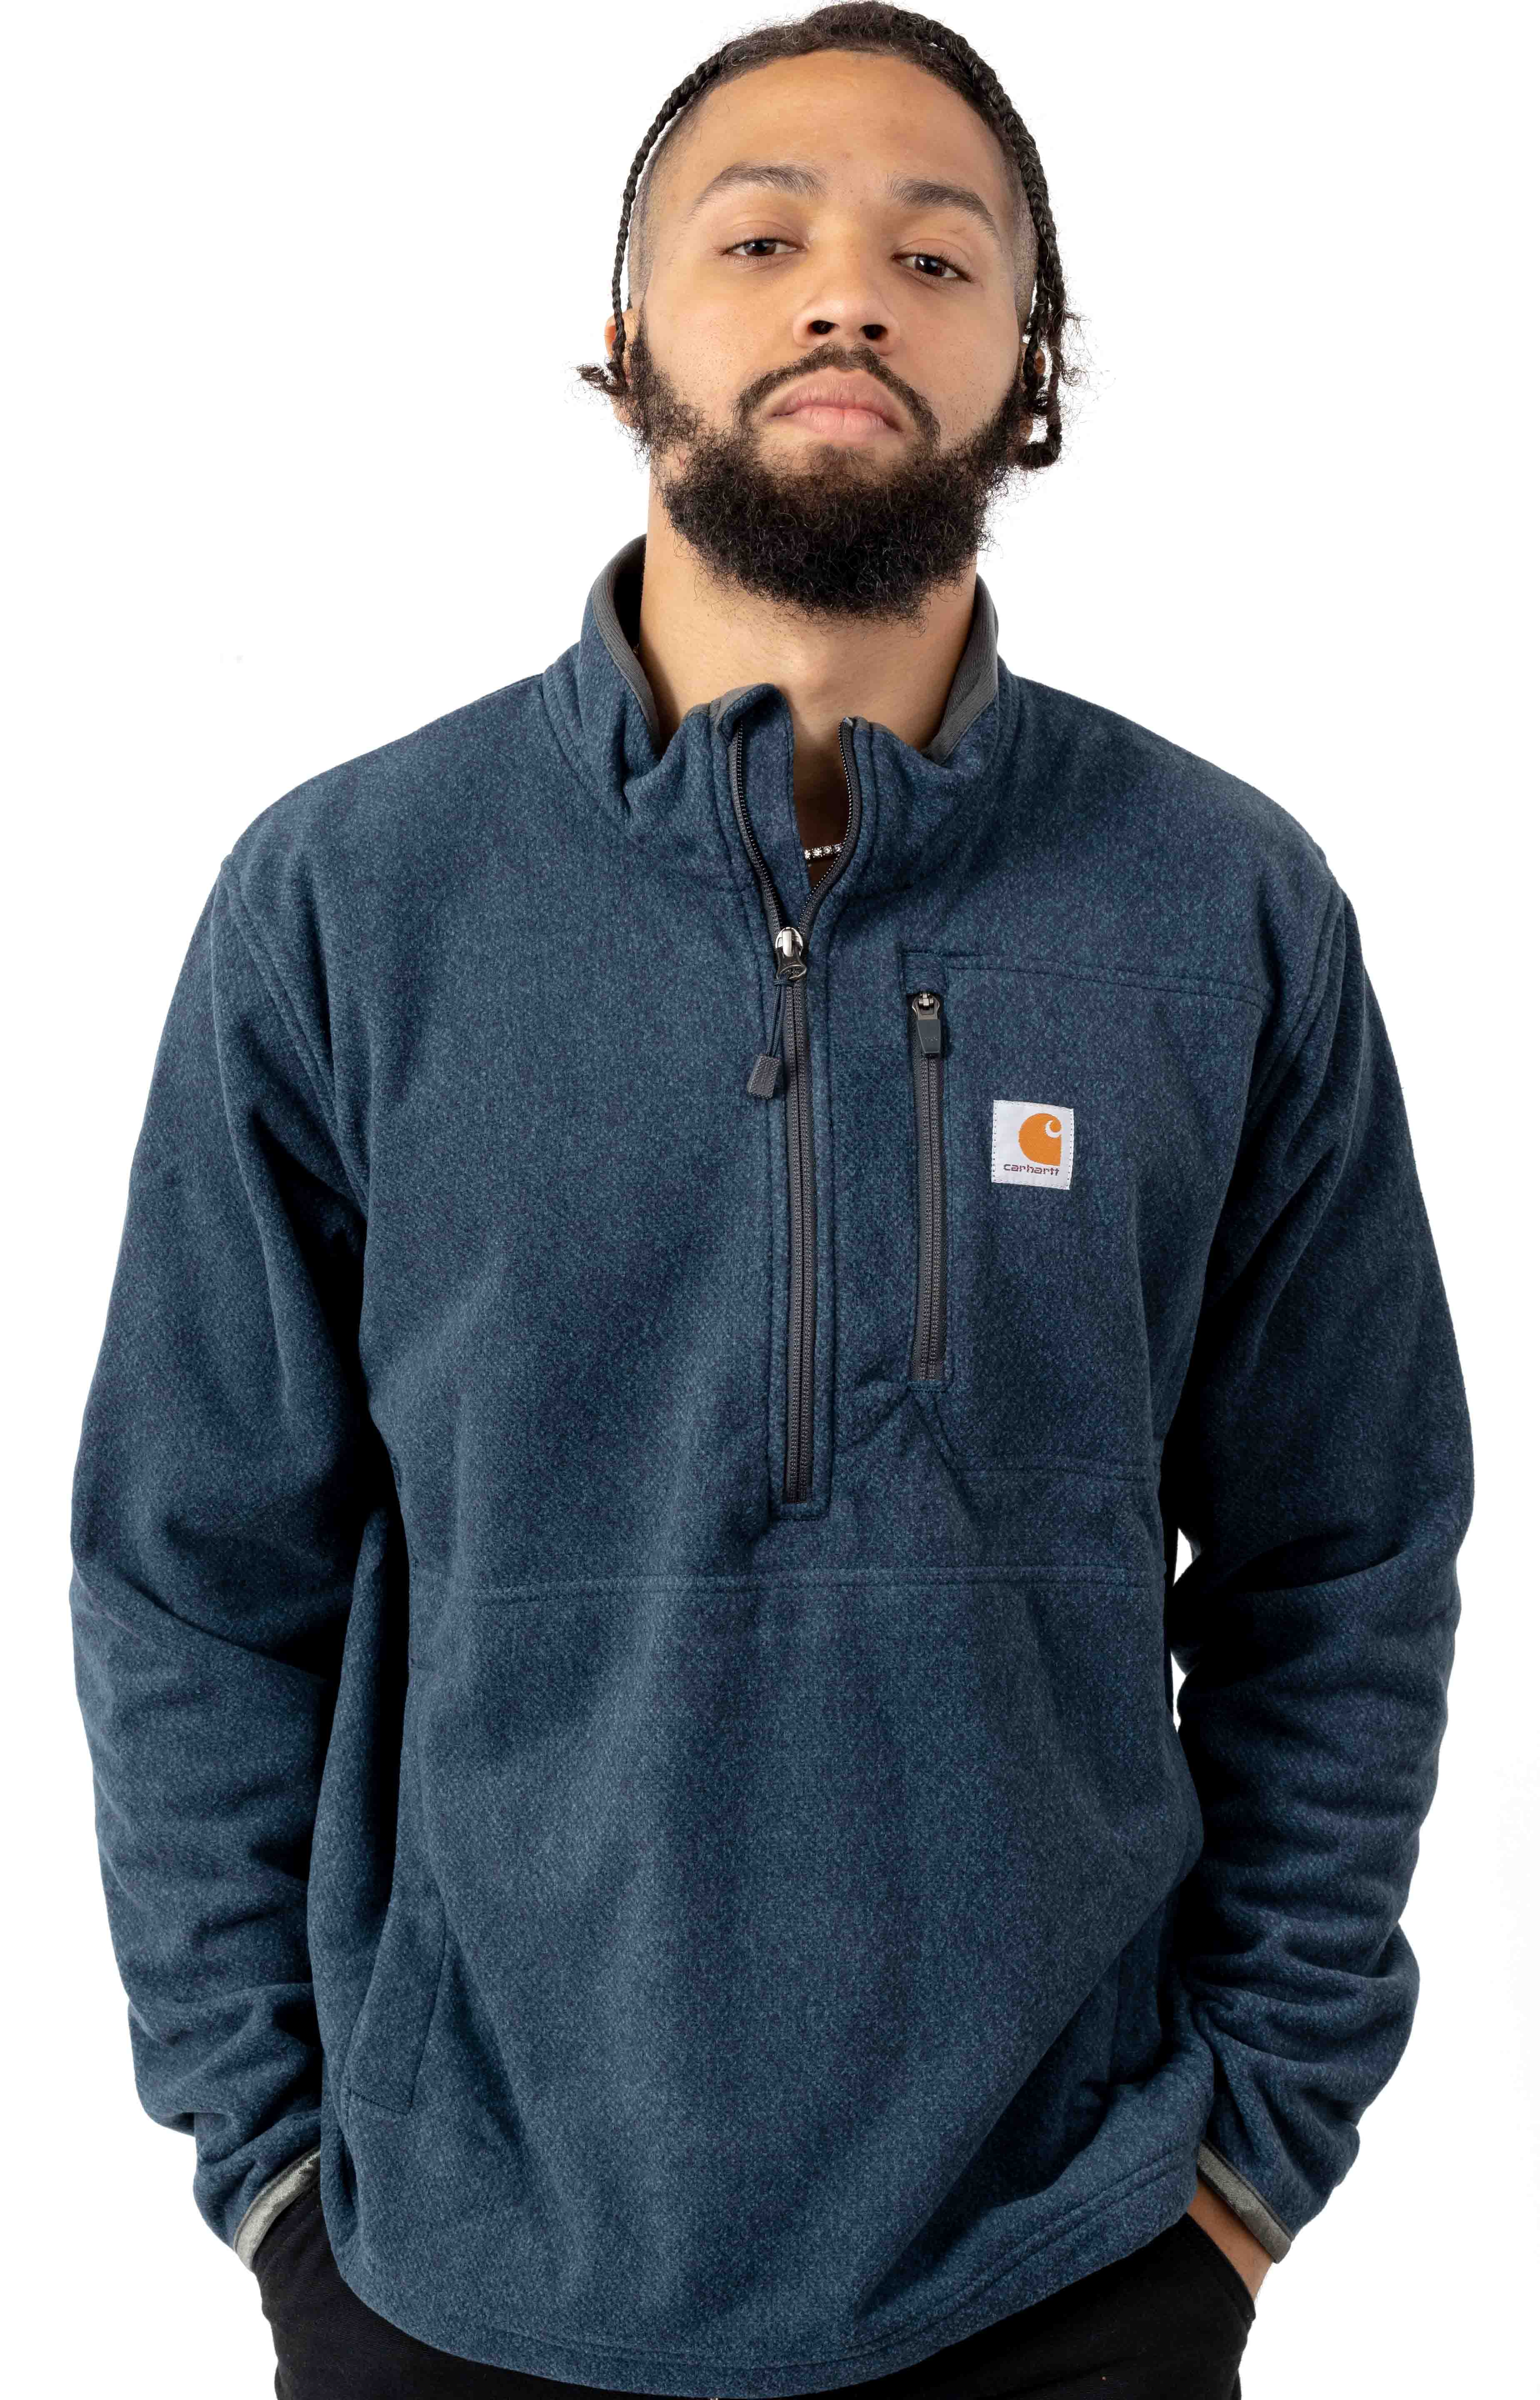 (103831) Dalton Half-Zip Fleece Jacket - Navy Heather